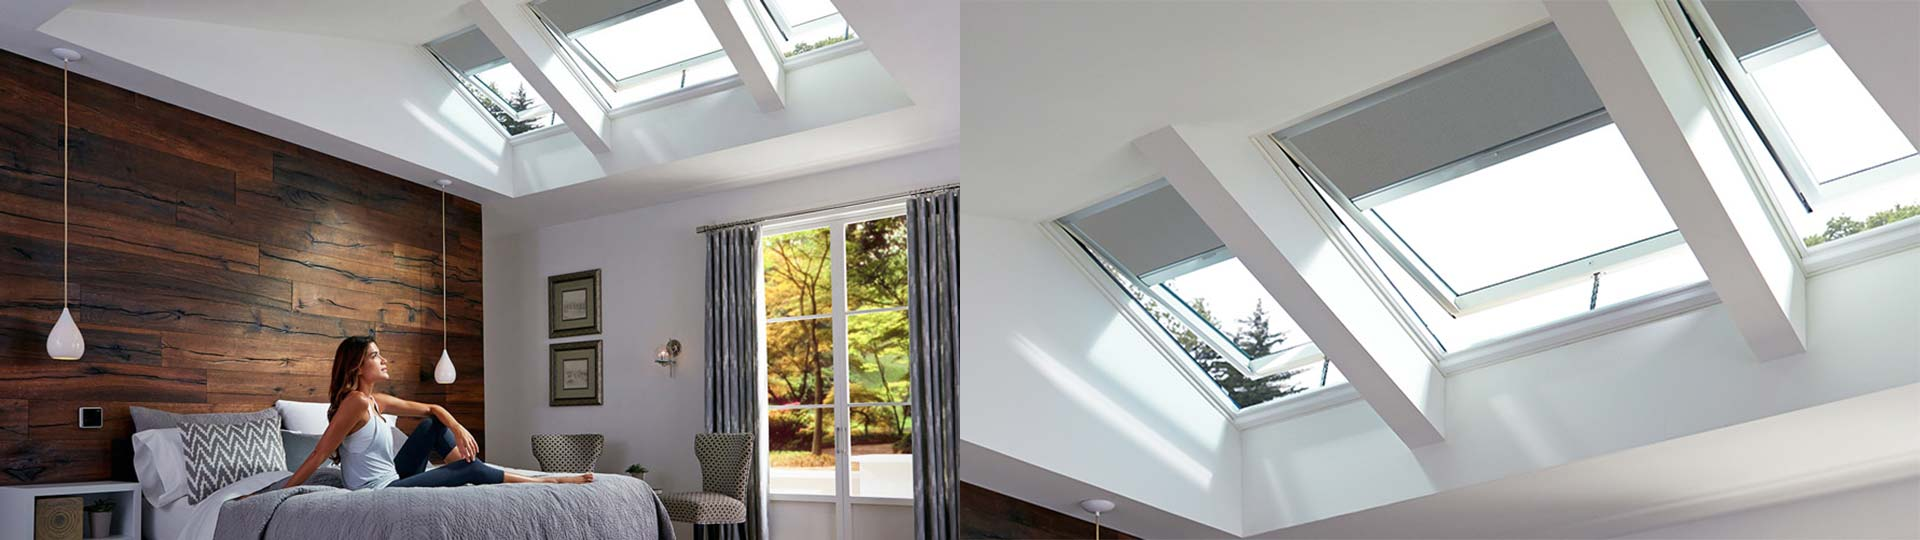 skylight blinds header